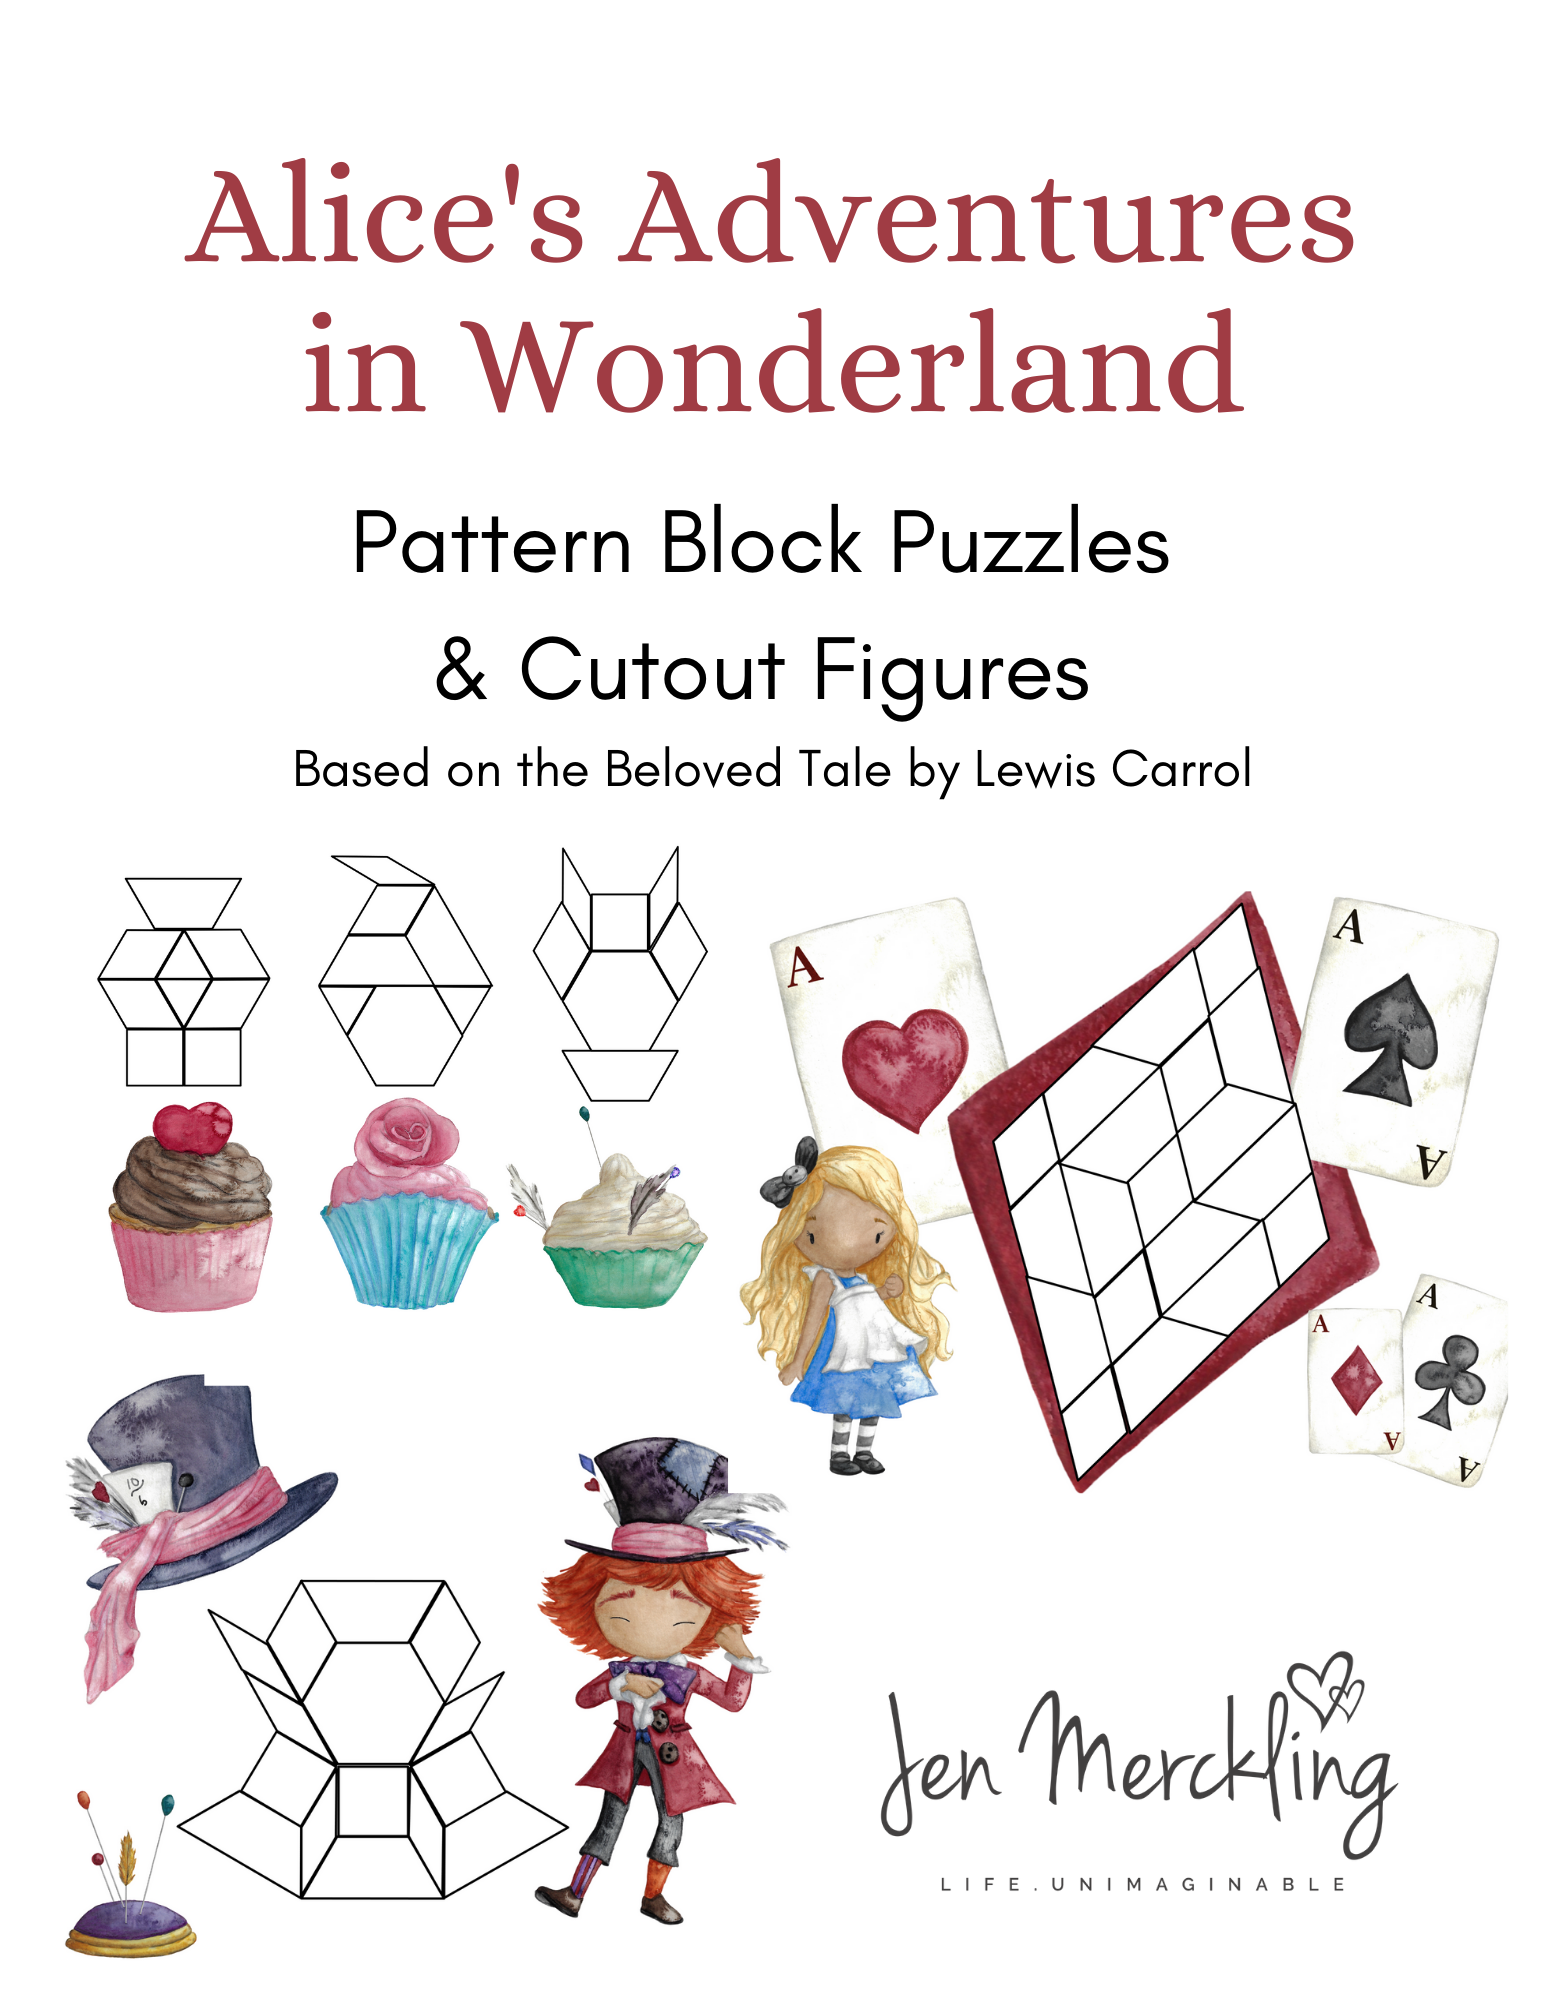 Math manipulatives using pattern block puzzles and cutout figures for hands-on learning and creative play